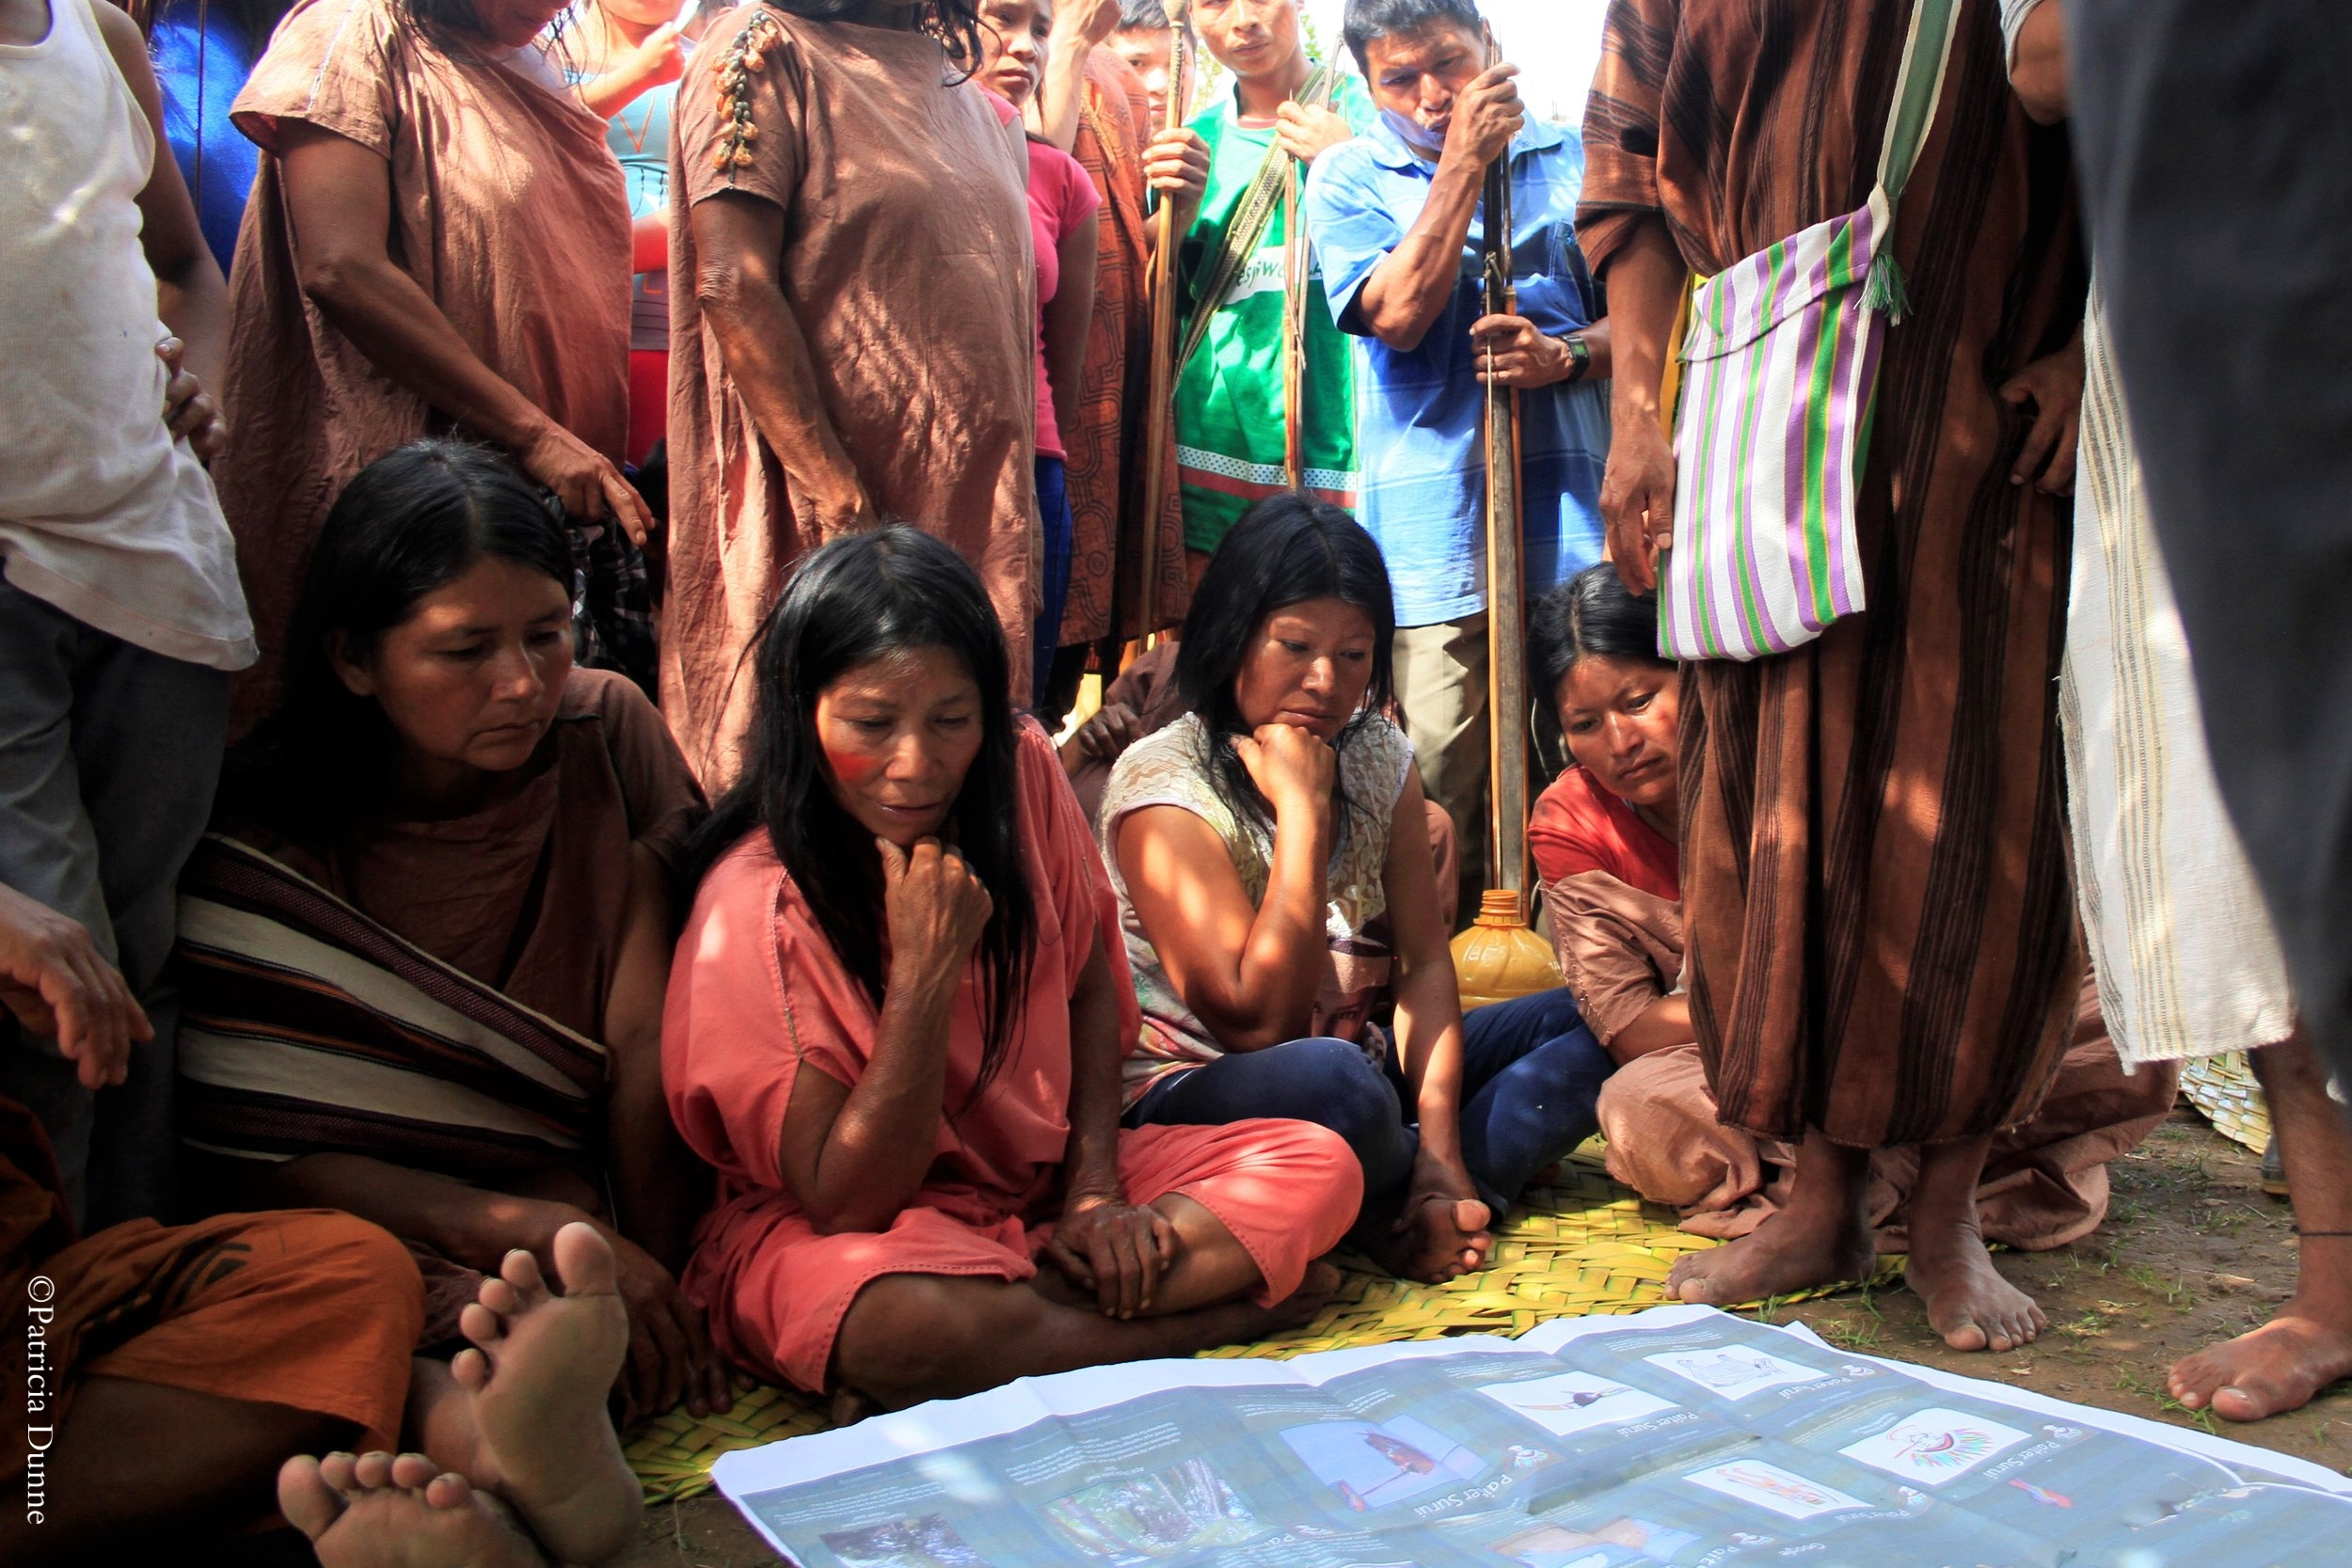 Women in the Palomar community review a cultural map created by the Suri indigenous community in Brazil to digitally record their people's cultural and ecological knowledge.